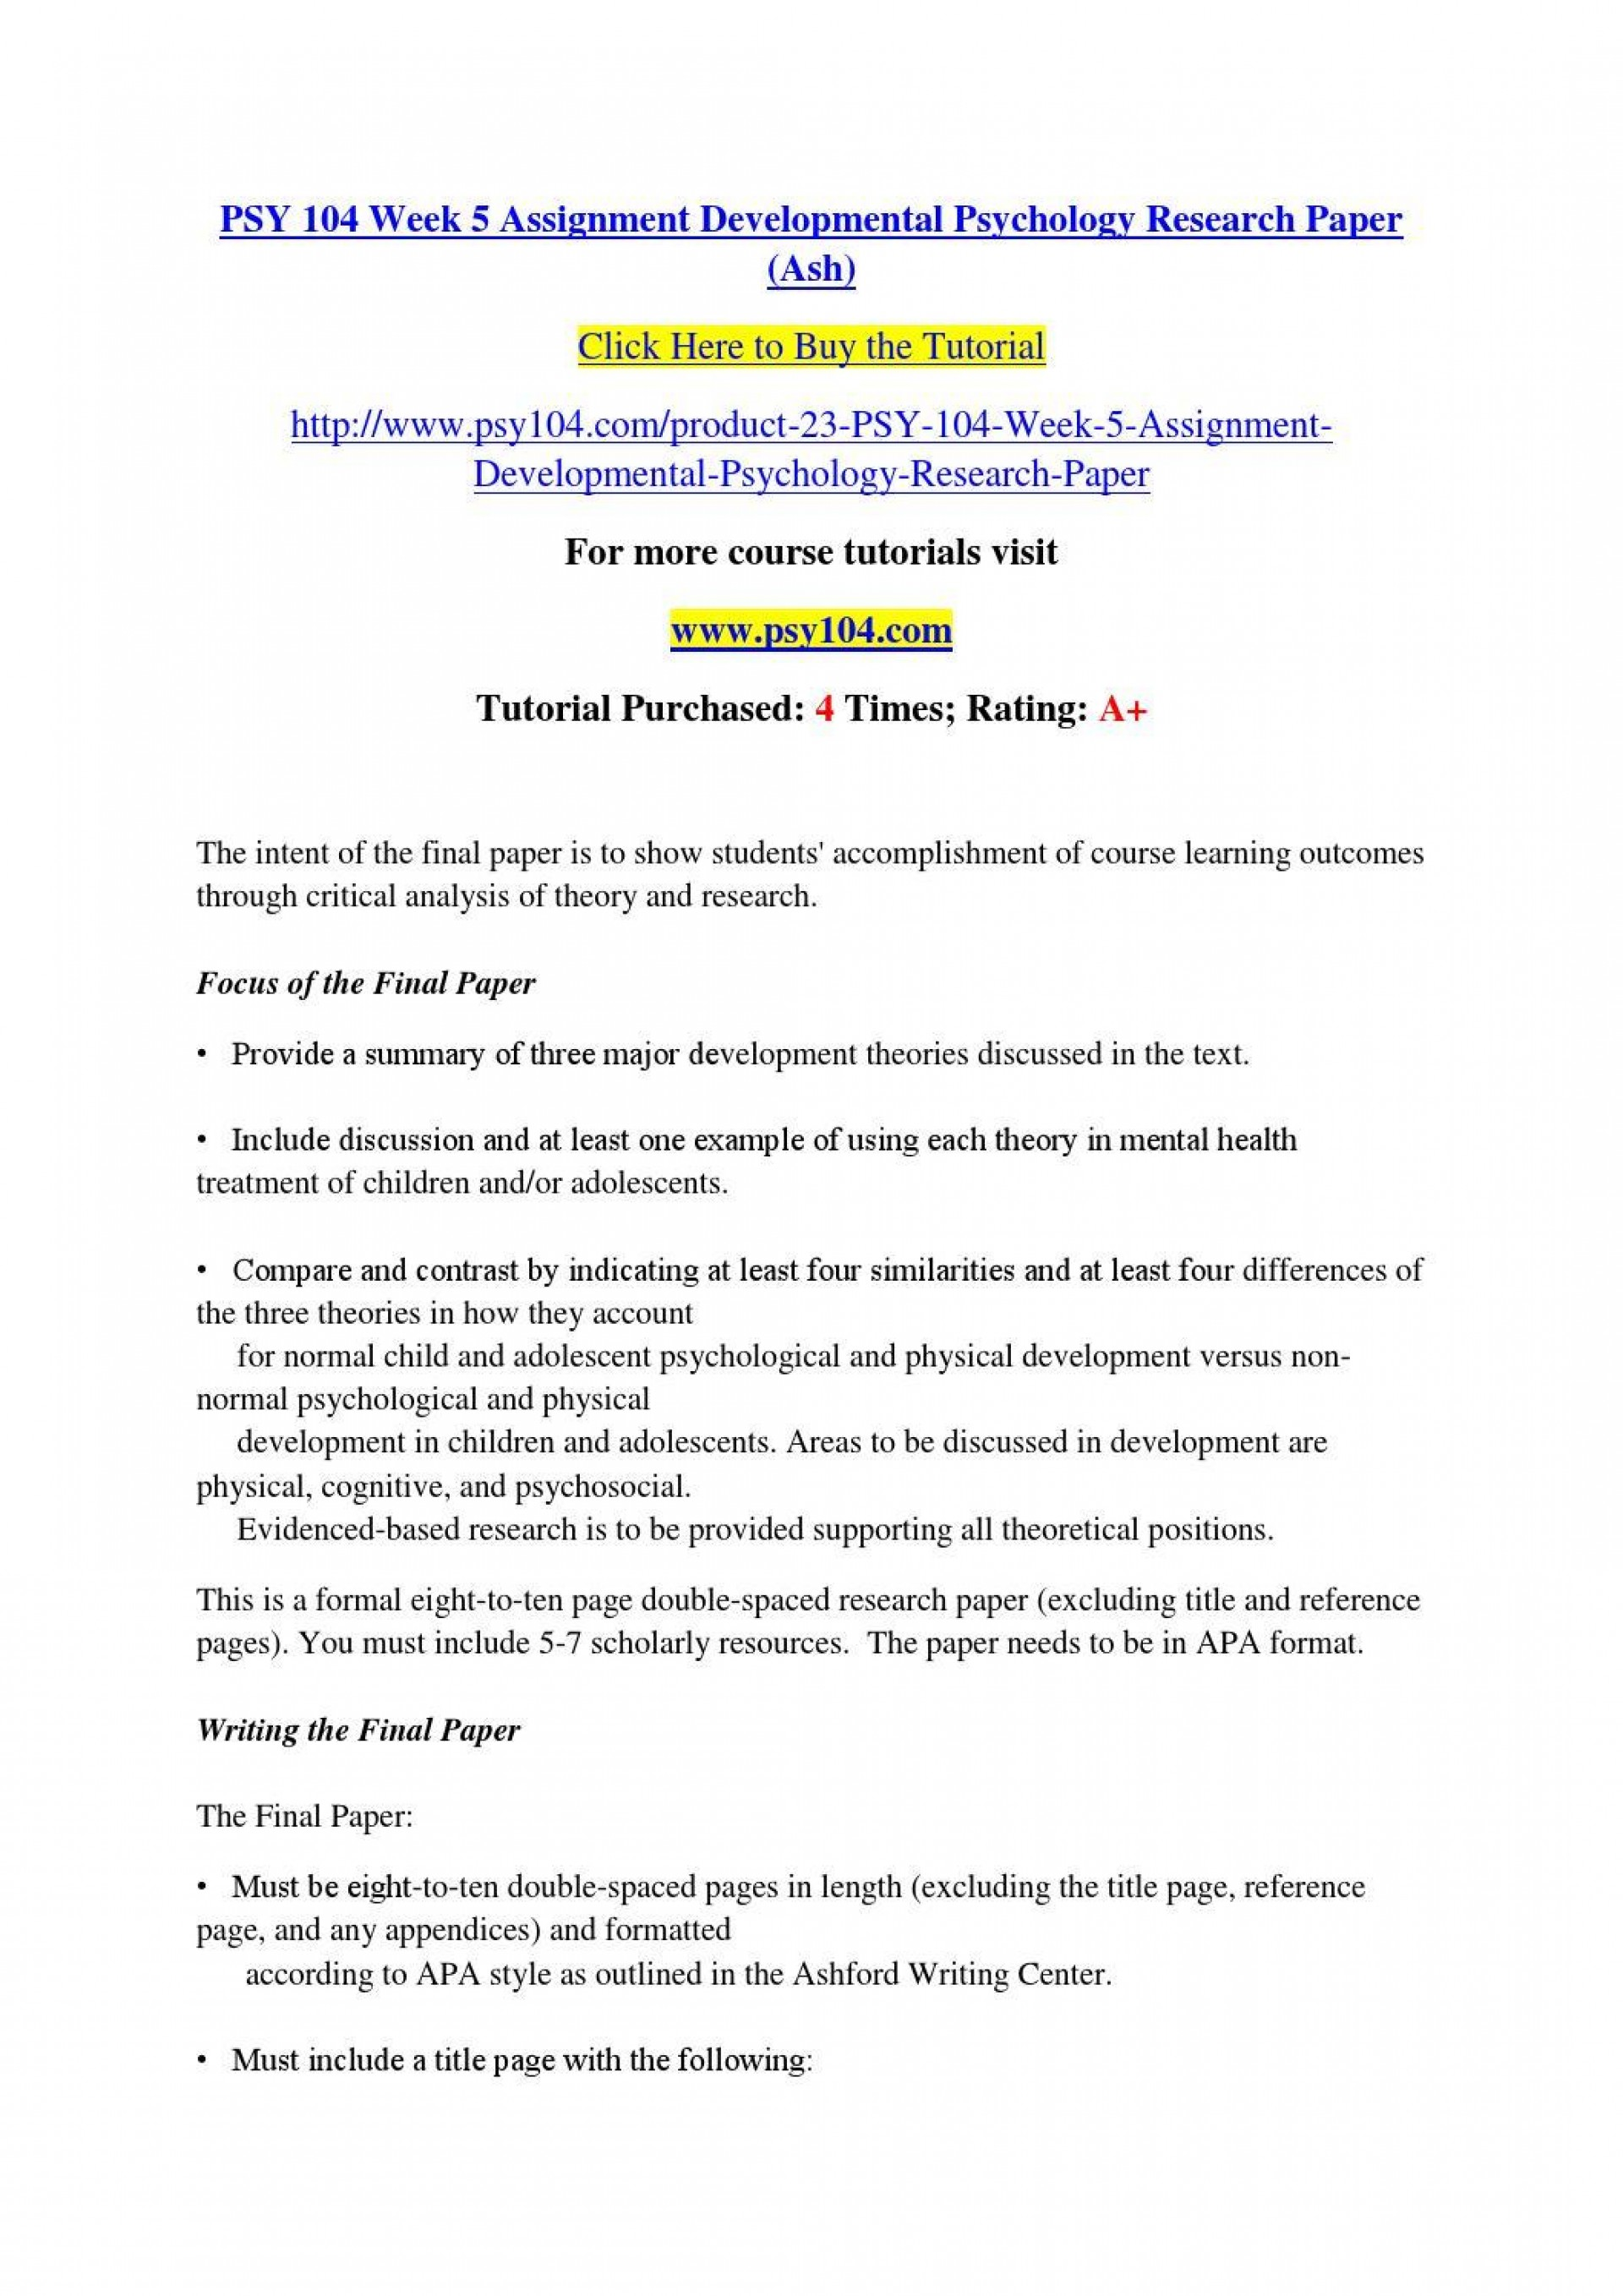 017 Developmental Psychology Essay Ideas Structure Psychological20ent Paper Topics Pdf20 Shocking Research Topic For College Students Computer Science Nursing 1920